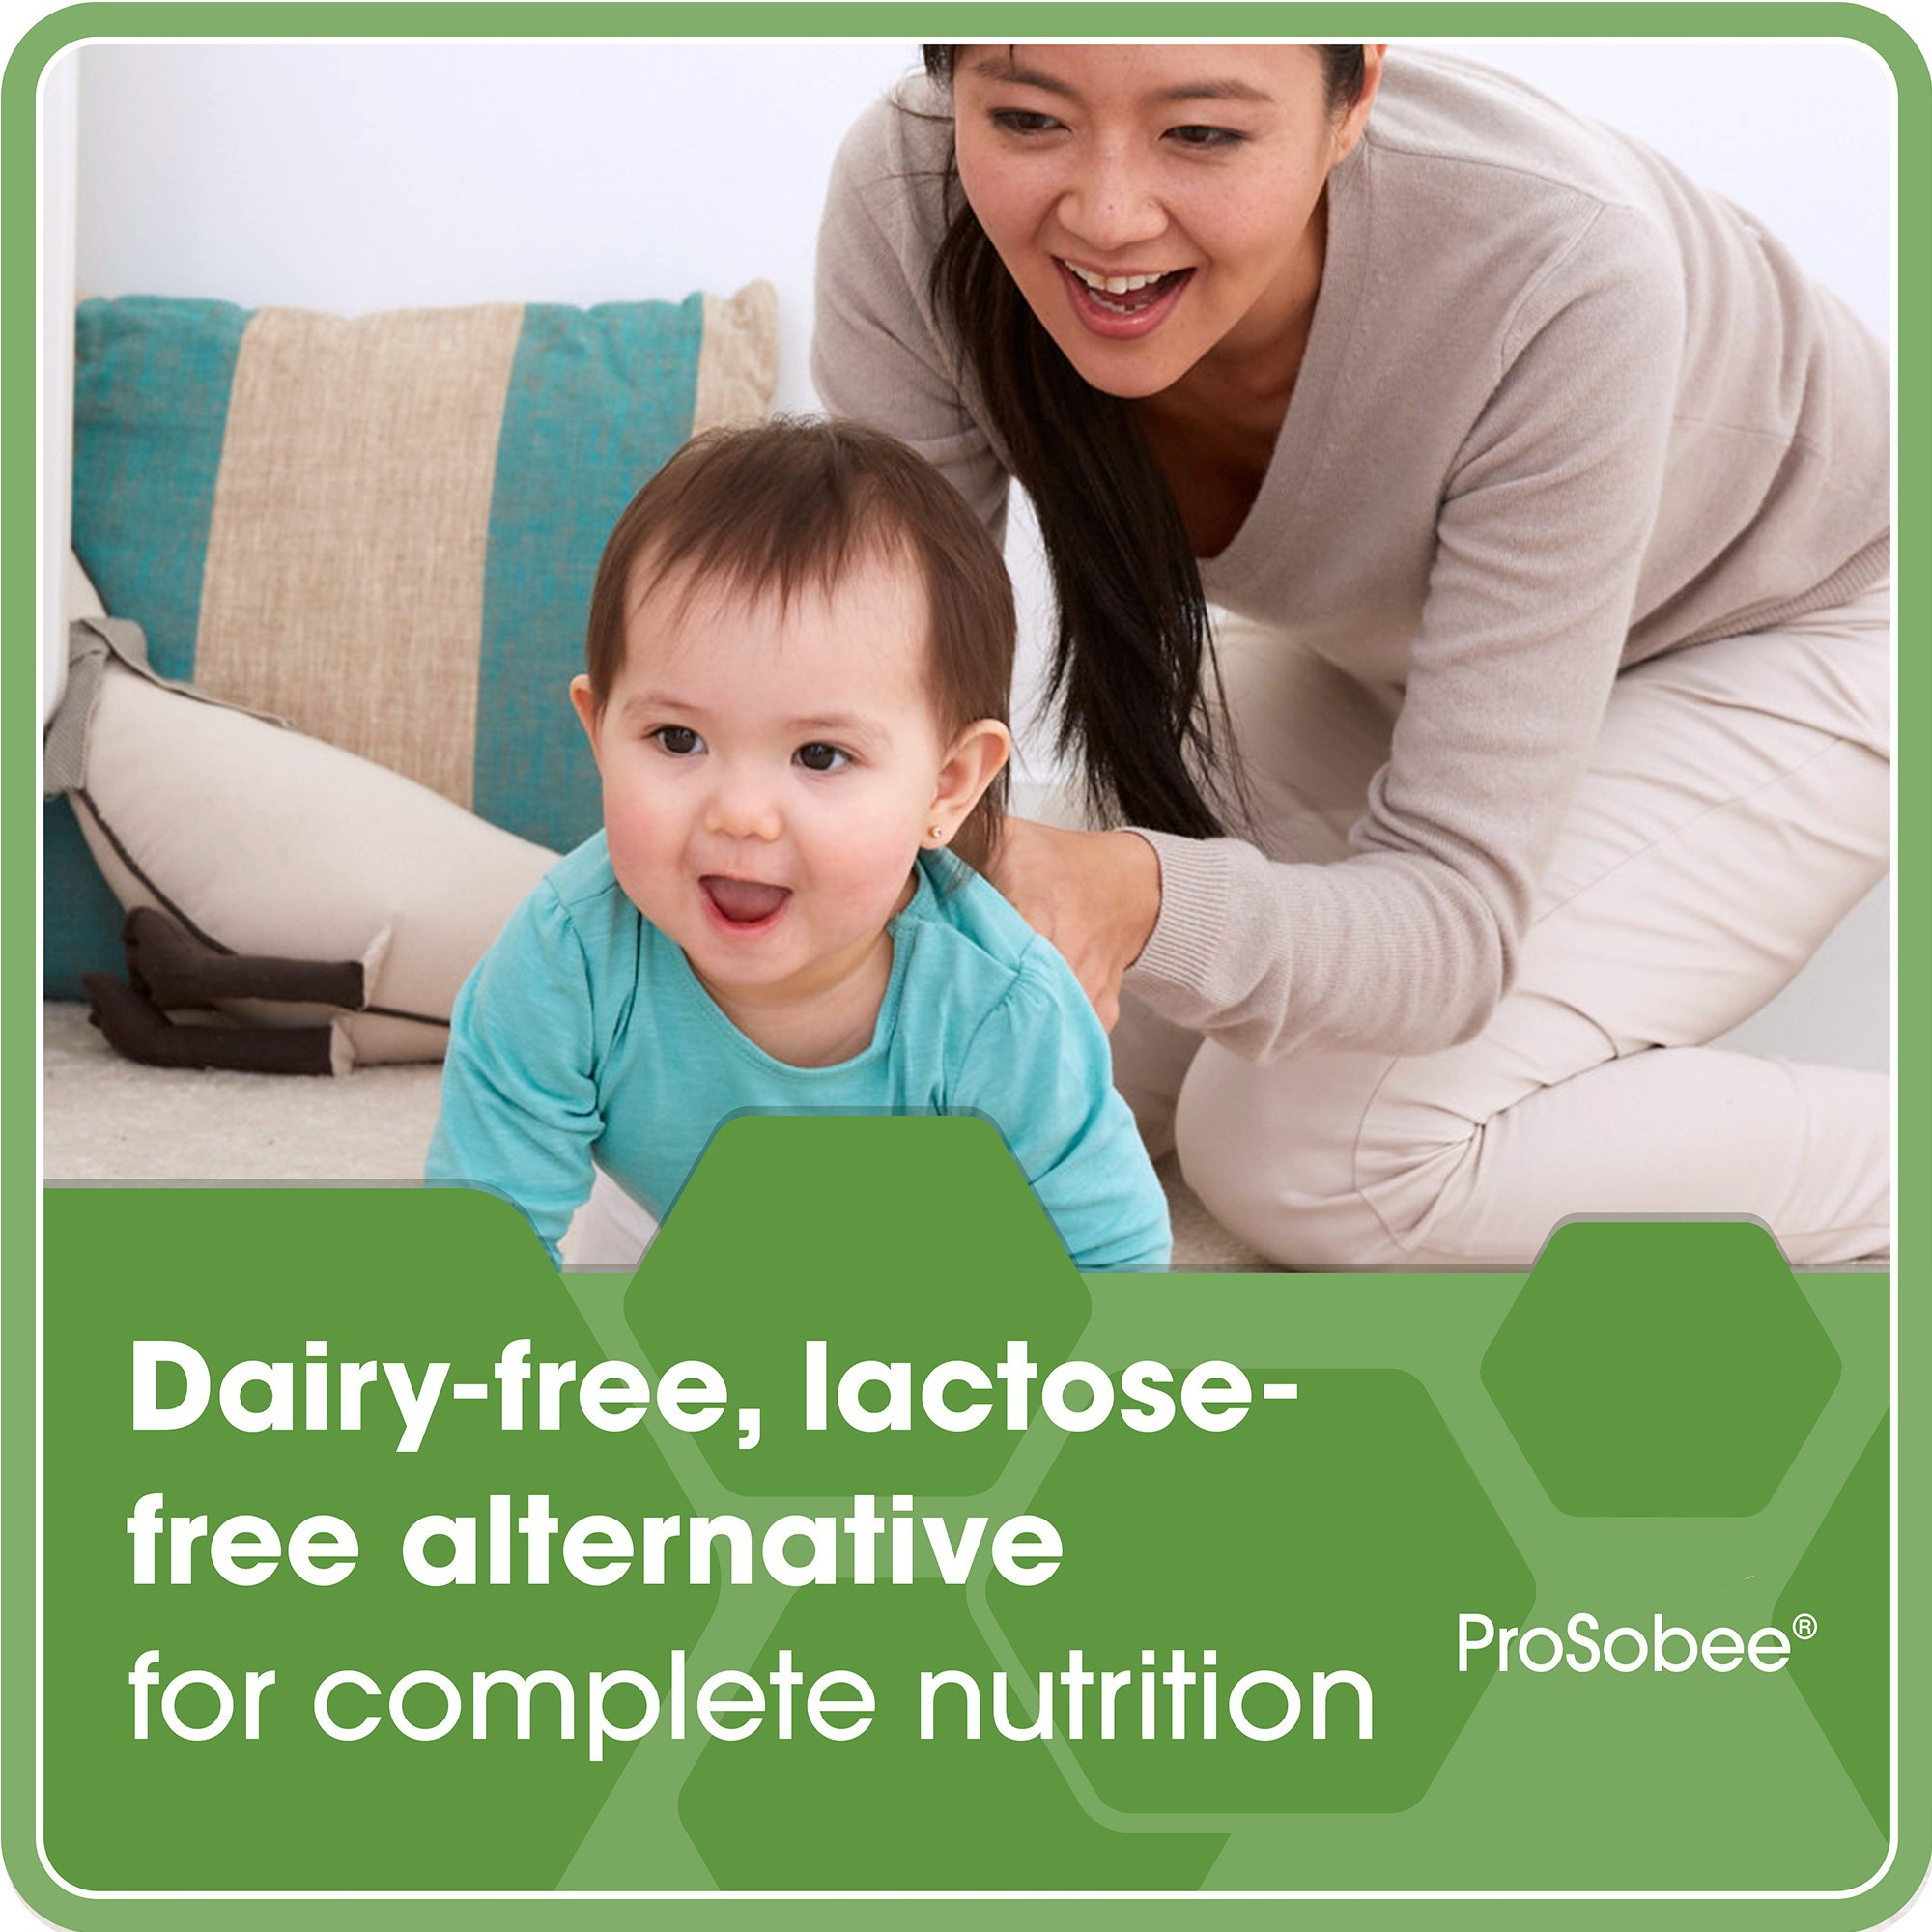 Enfamil ProSobee Soy Sensitive Baby Formula, Dairy-Free Lactose Free Plant Protein Milk Powder, 8  fluid ounce (24 count) - Omega 3 DHA, Iron, Immune & Brain Support by Enfamil (Image #6)